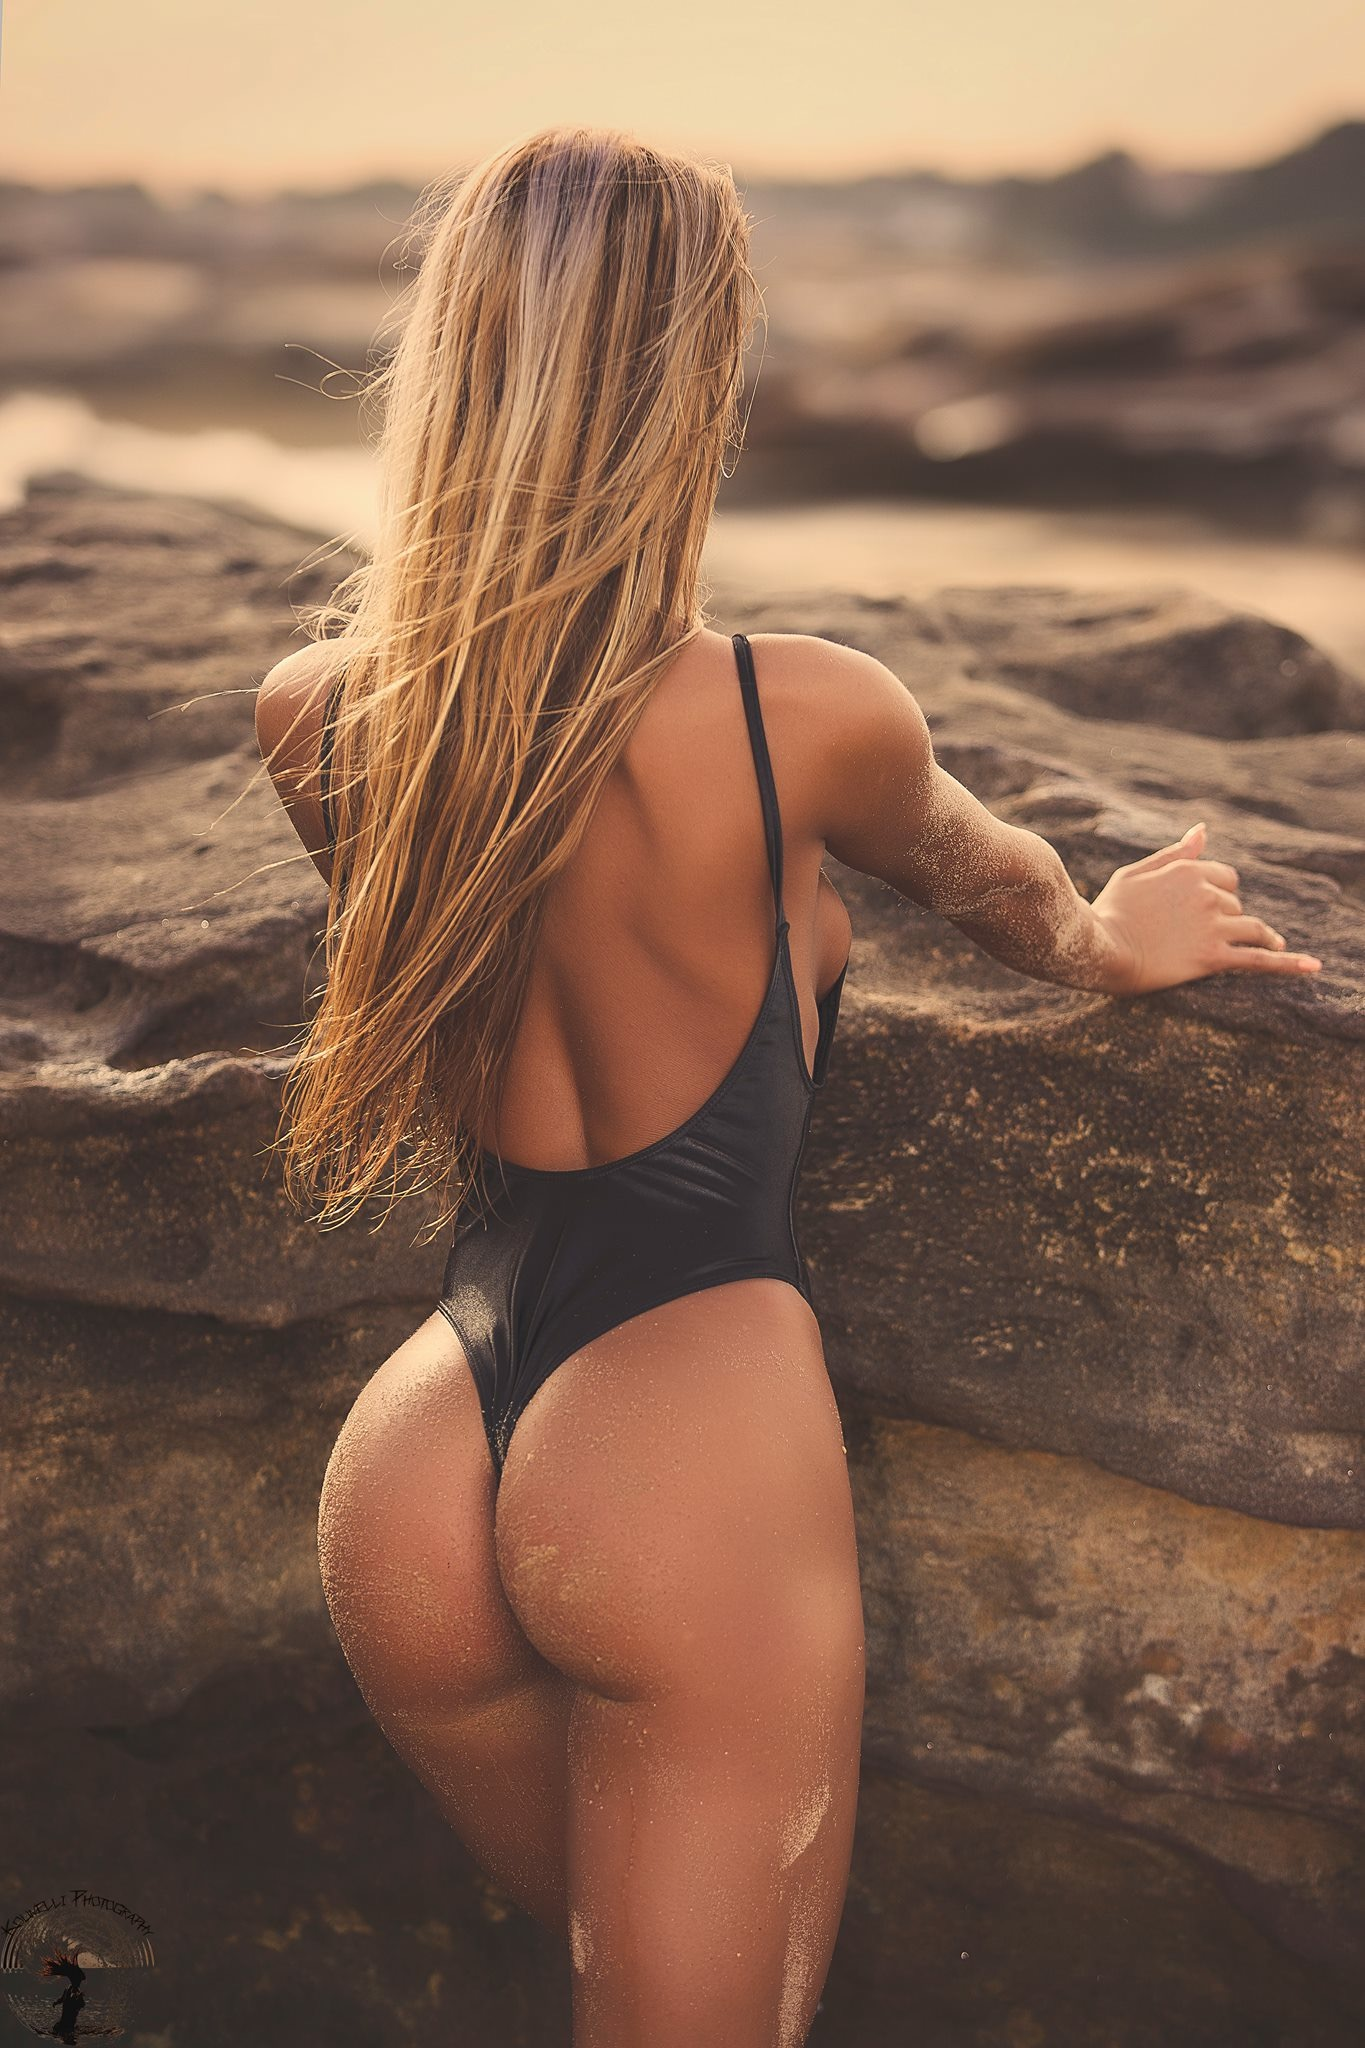 Pin On Hot Girls Nice Butts